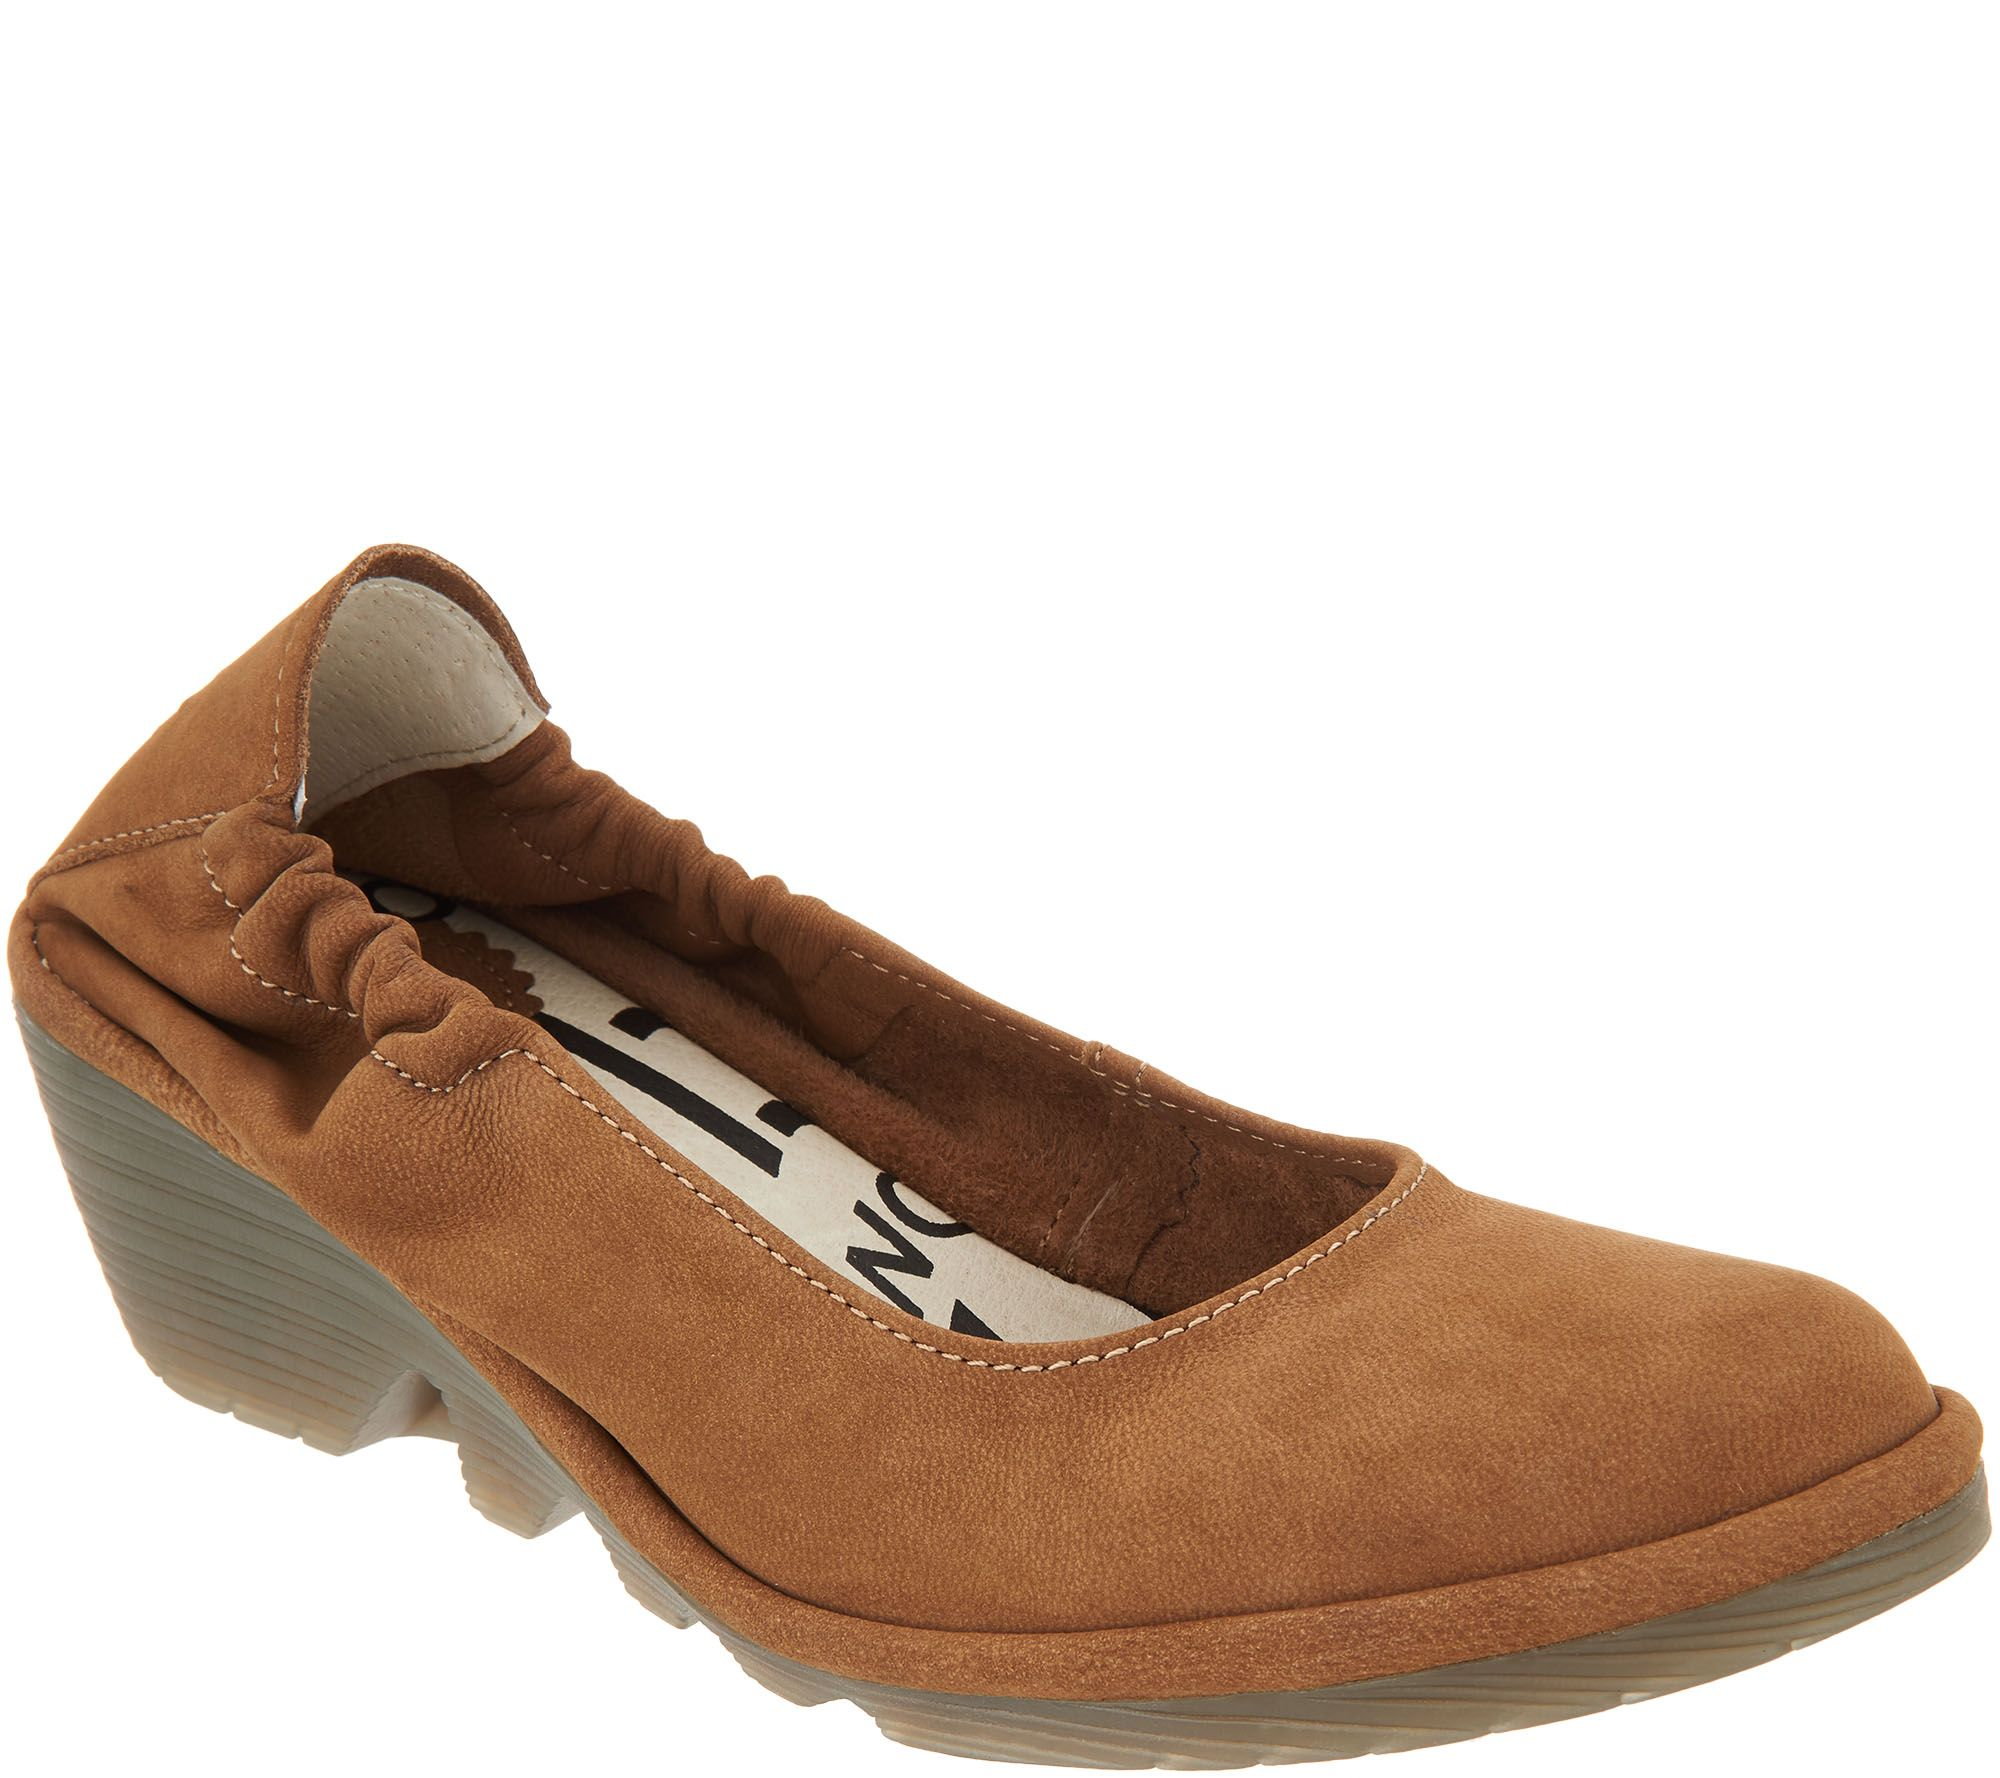 free shipping purchase cheap sale collections FLY London Leather Low Wedge Pumps - Pled clearance pay with visa popular online where to buy cheap real 72nzN7wuP